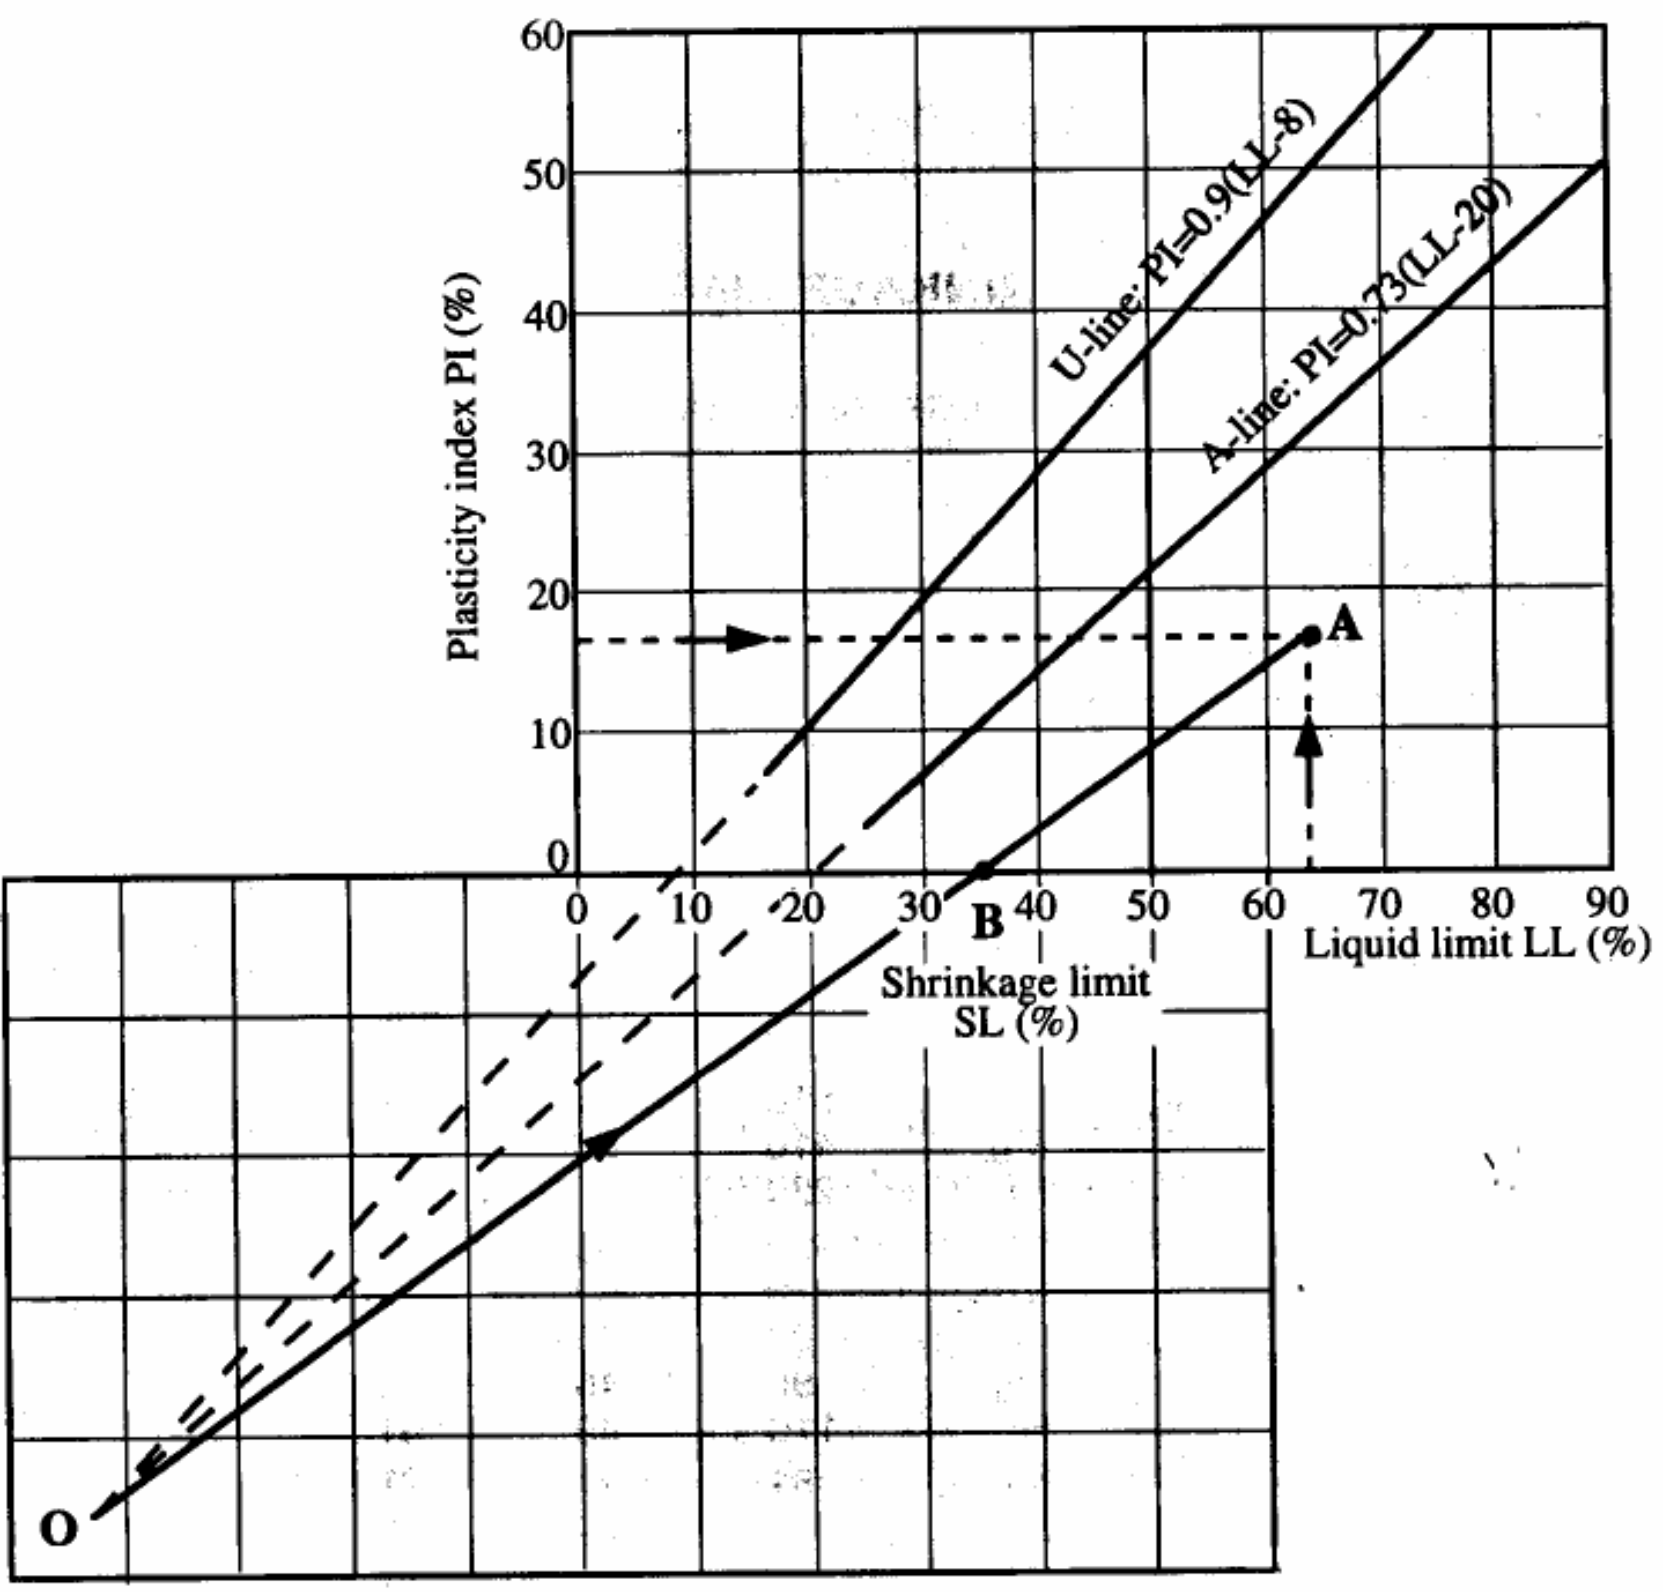 Determination of shrinkage limit from liquid limit and plasticity index. U line and A line should be extrapolated which intersects at O point. Connect the O point with A point (LL and PI of the sample). OA line intersects x axis at B point which is the Shrinkage limit of soil.